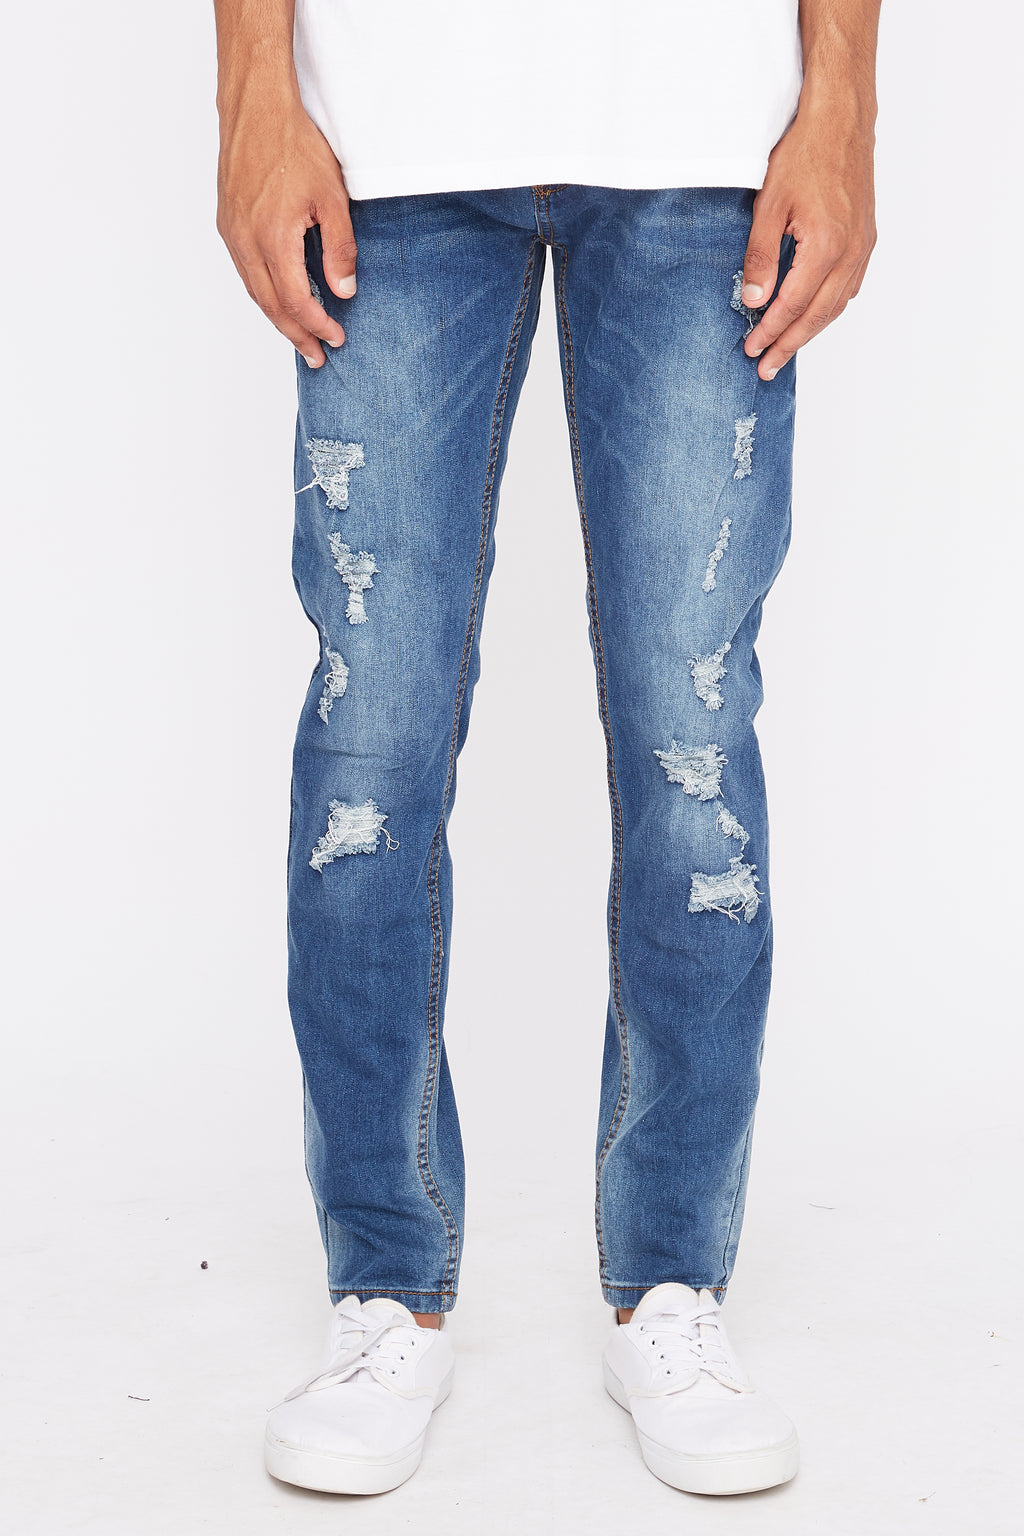 Zoo York Mens Medium Wash Distressed Skinny Jeans